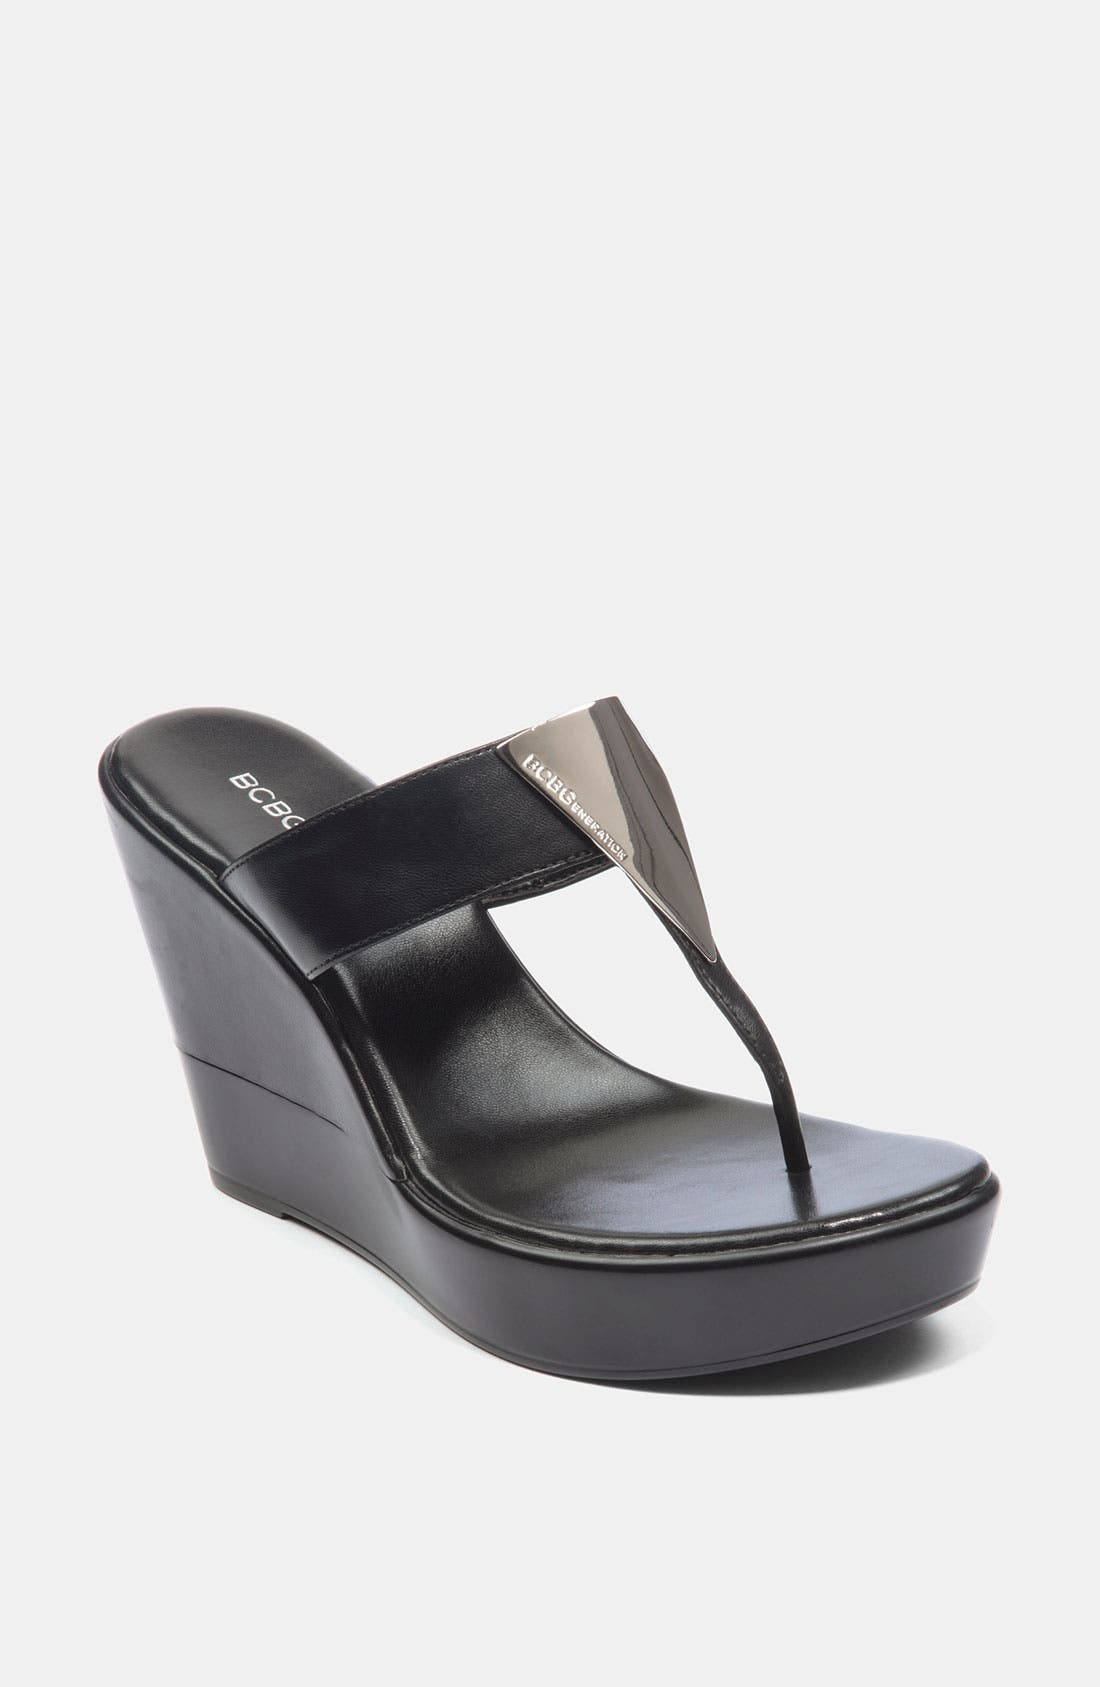 Alternate Image 1 Selected - BCBGeneration 'Qwill' Sandal